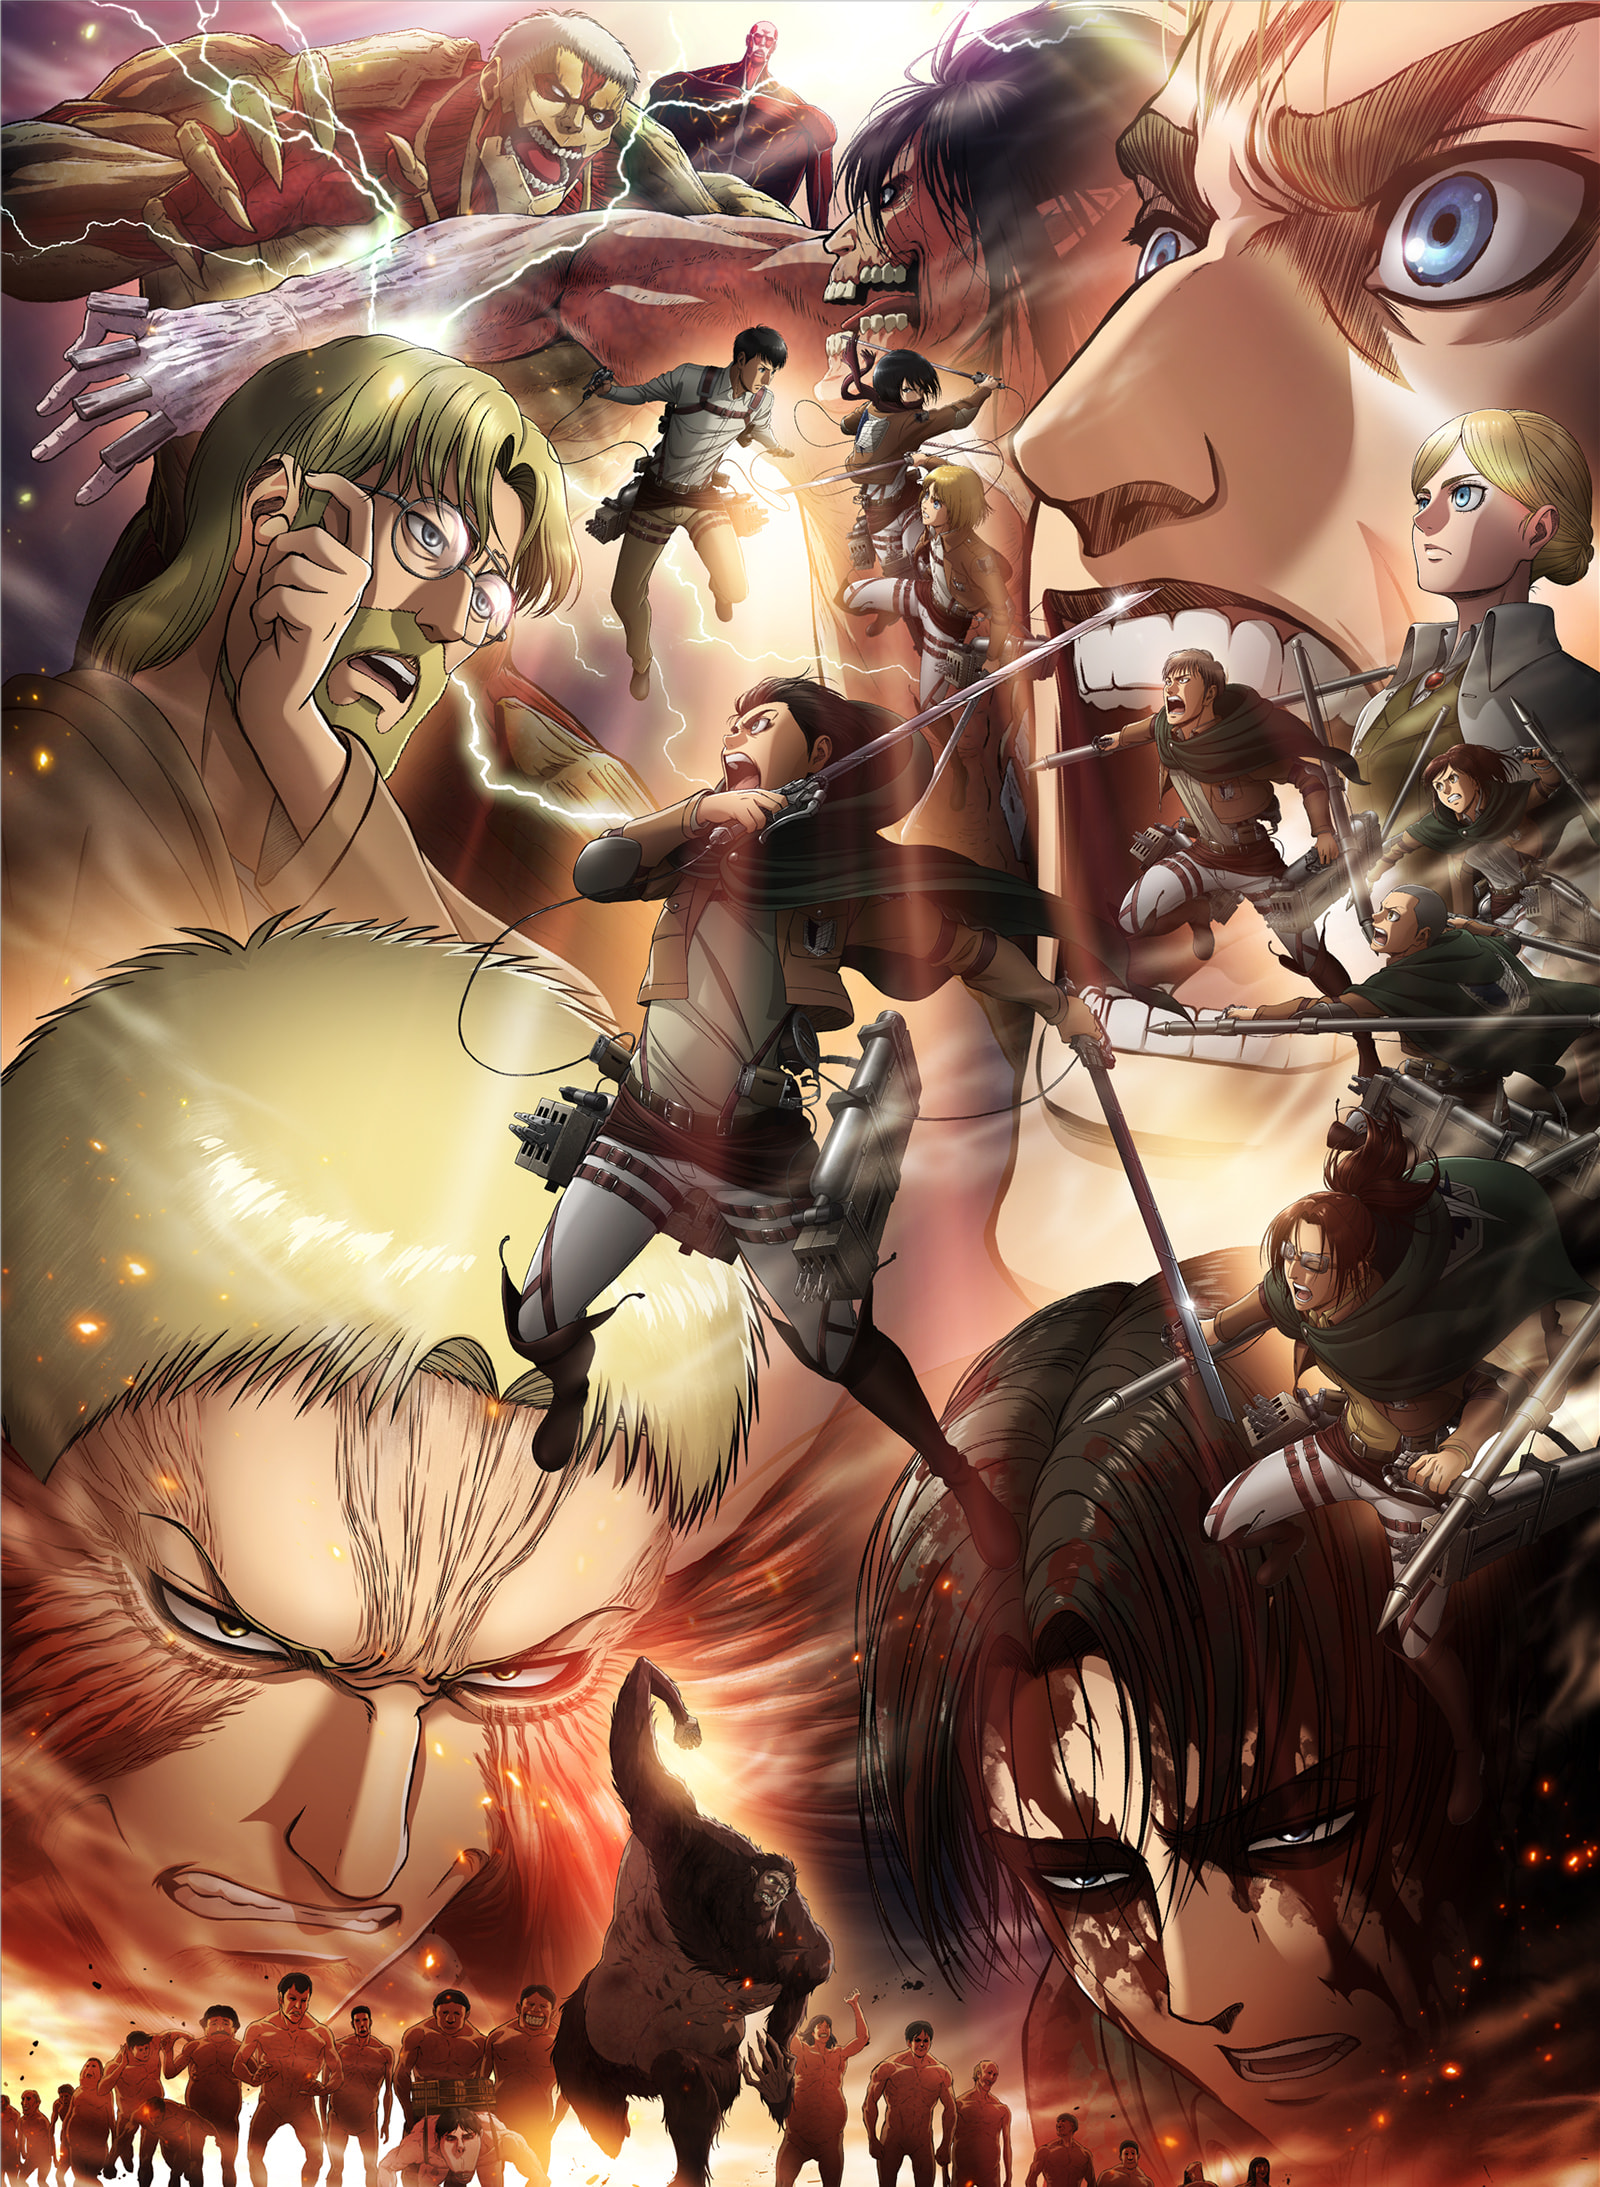 Attack on Titan Season 3 Part 2 will be airing in a few